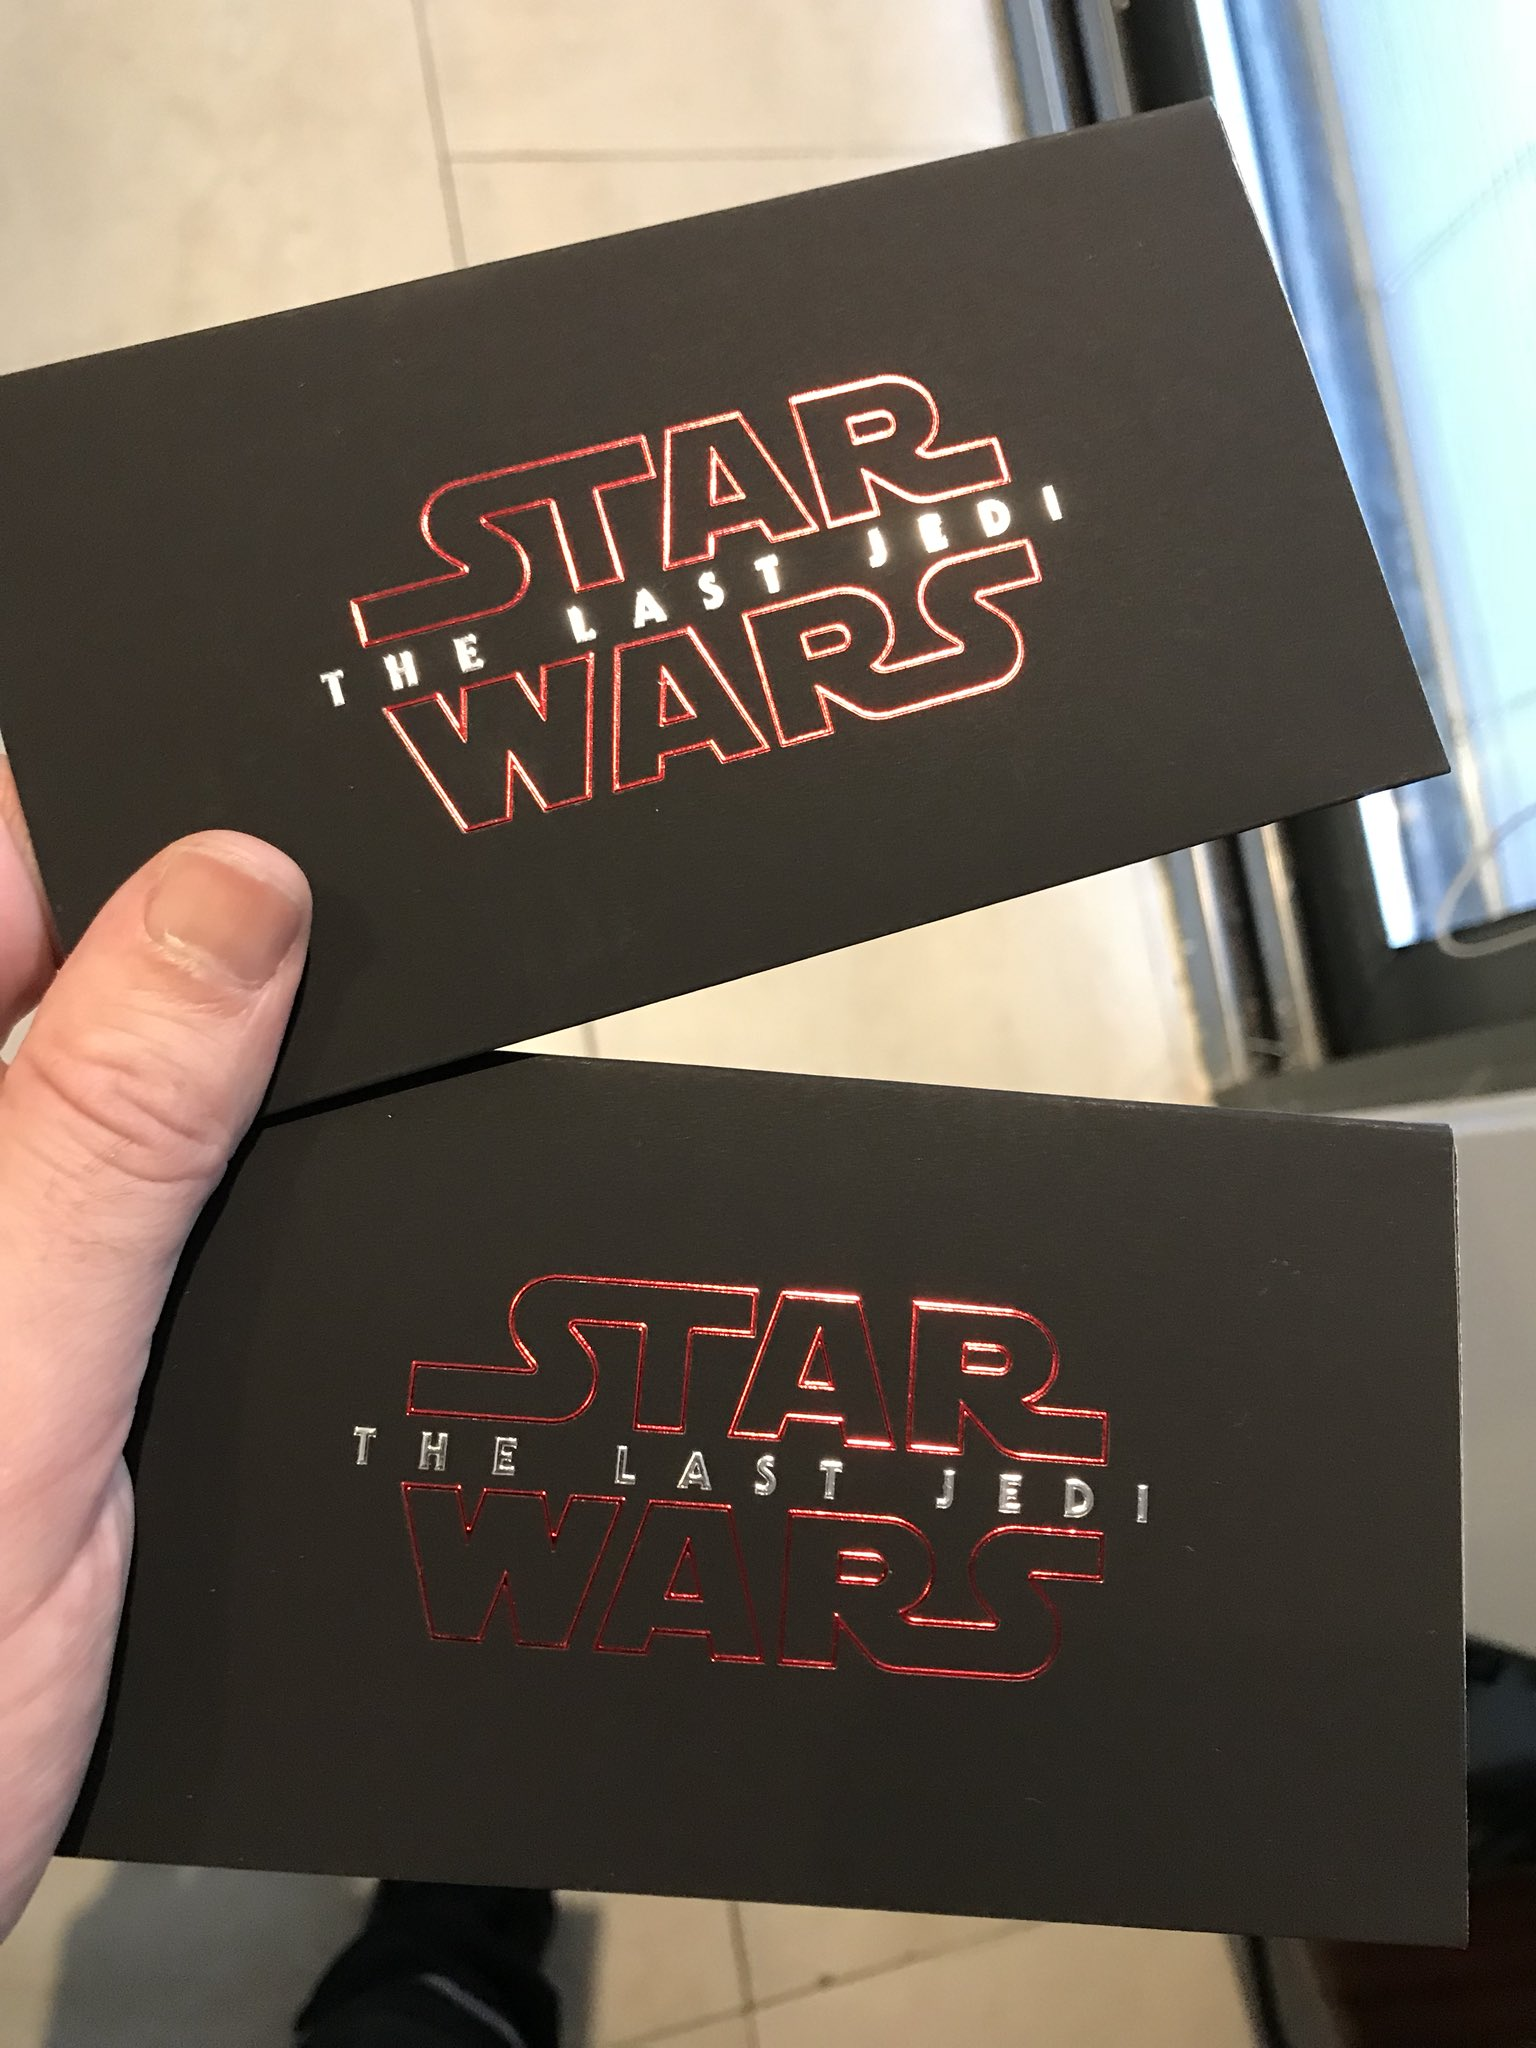 Christmas came early !!!!! @StarWarsUK the last Jedi premiere tickets , boom💥 https://t.co/TLeBhtlKqJ